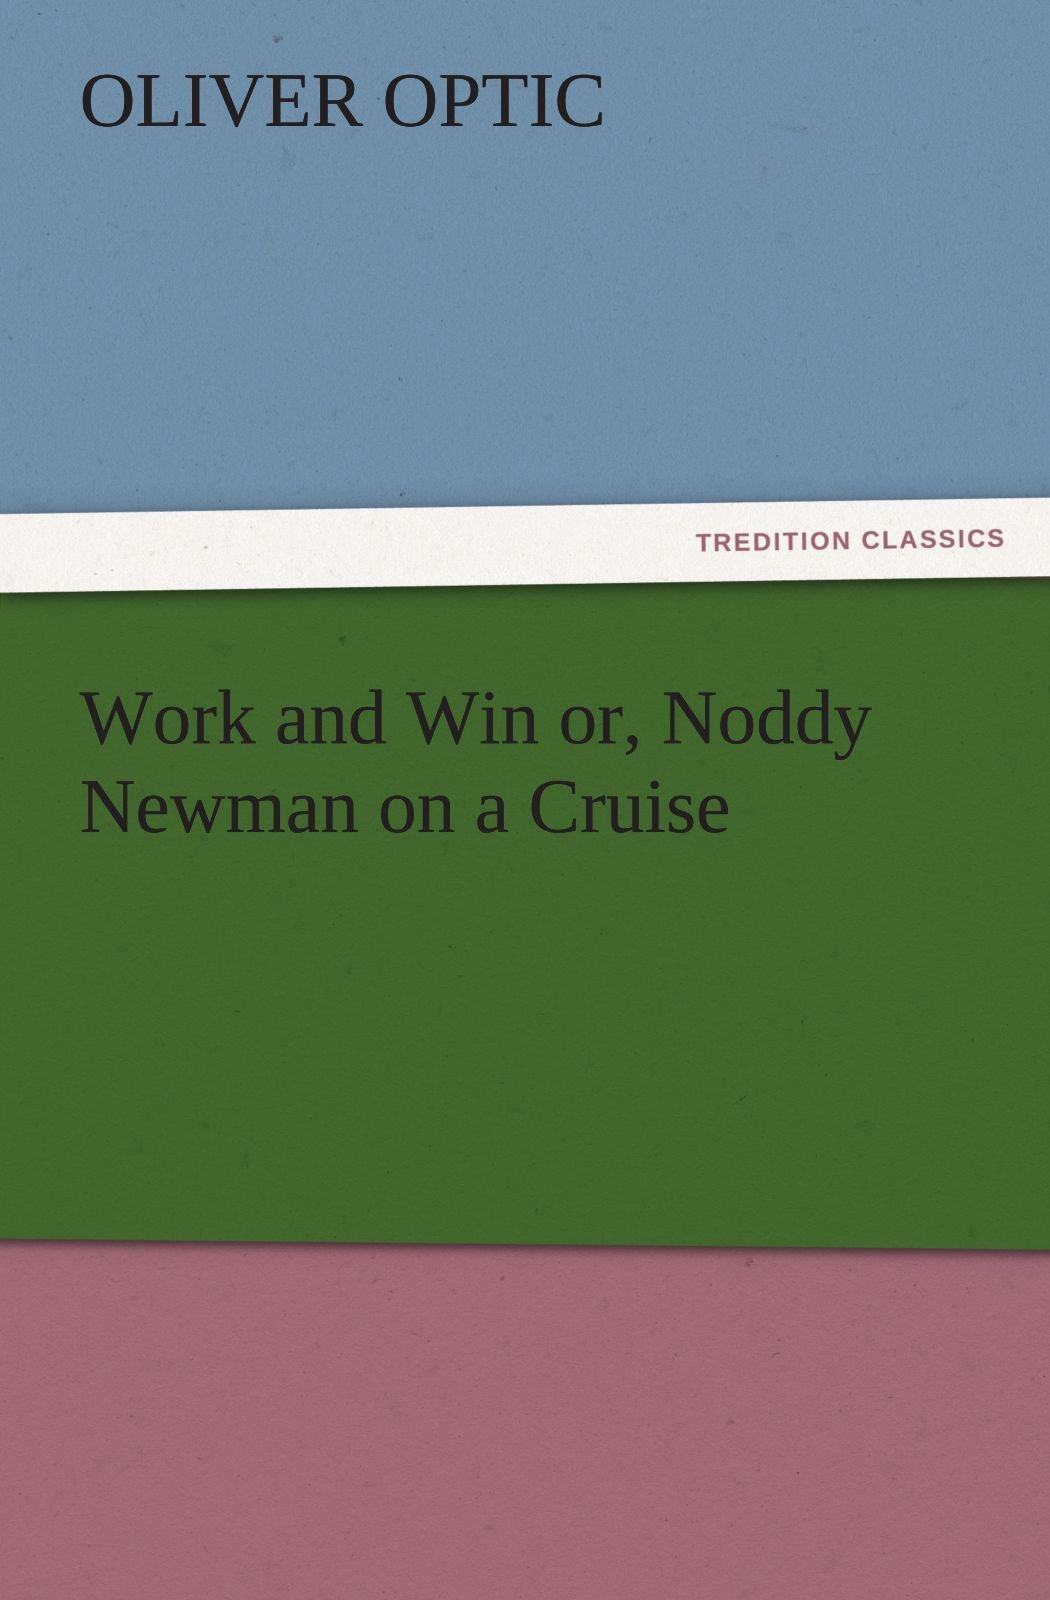 Work and Win or, Noddy Newman on a Cruise (TREDITION CLASSICS) pdf